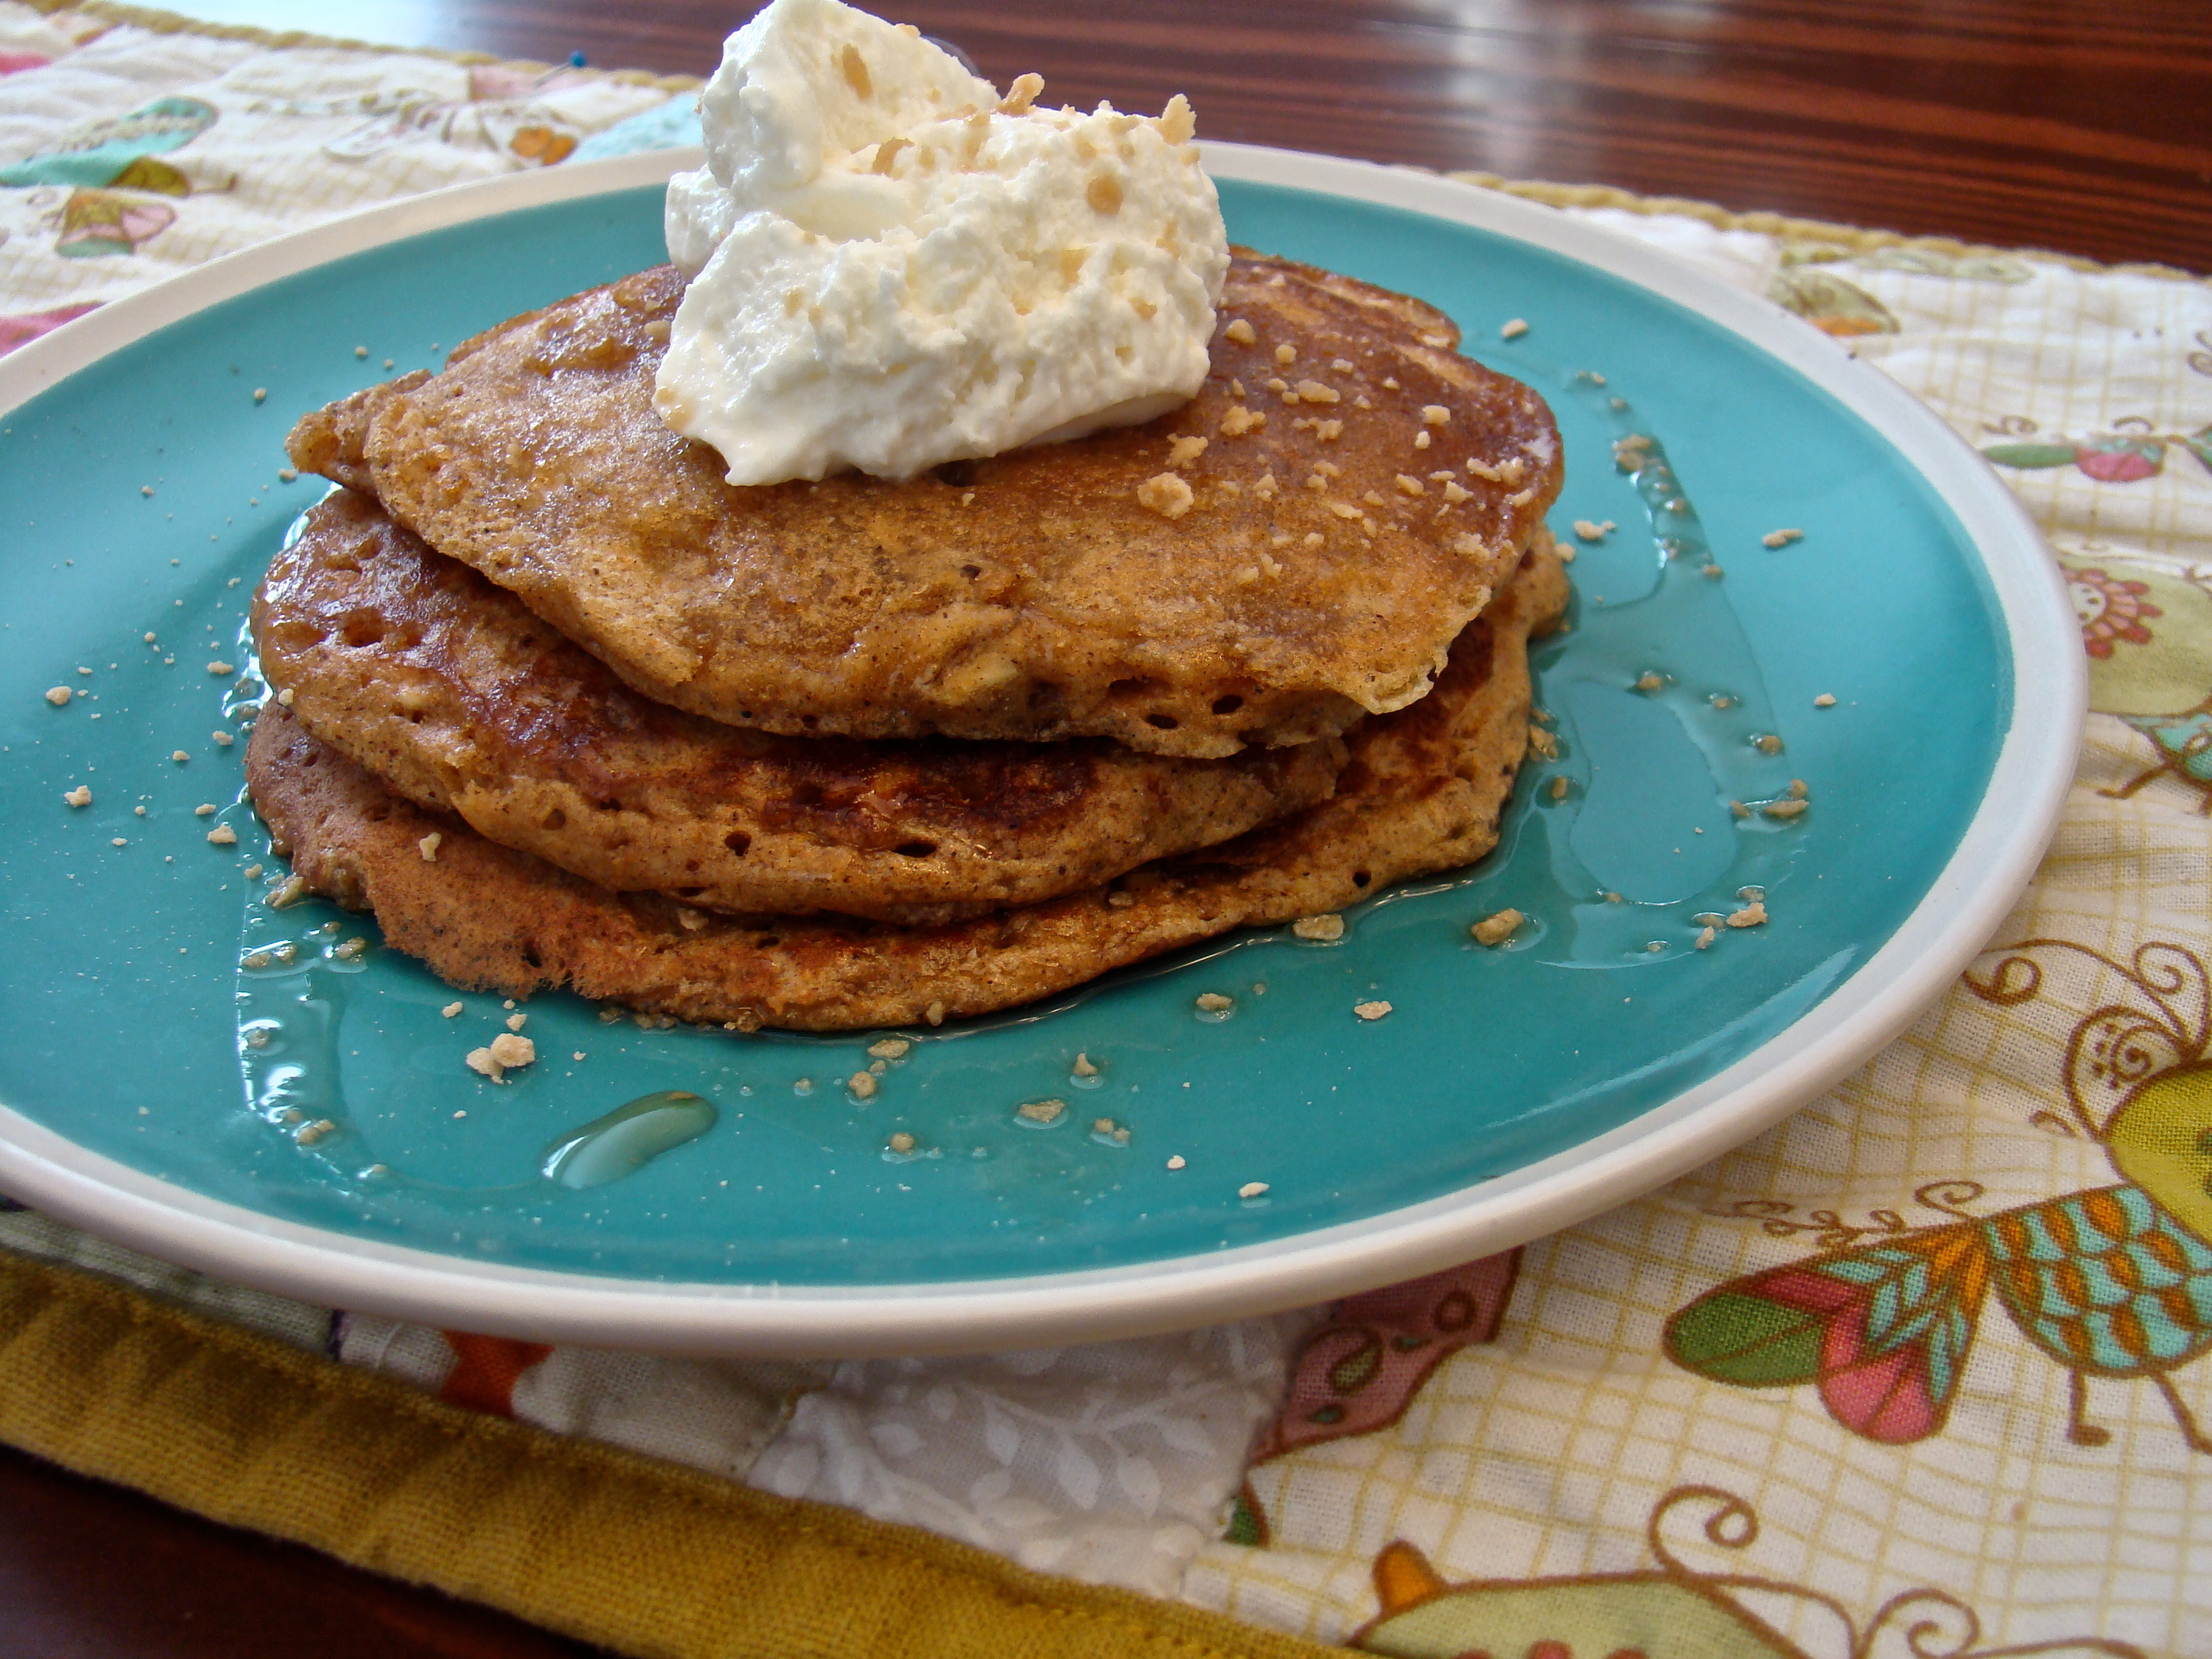 Fall Spice Pancakes